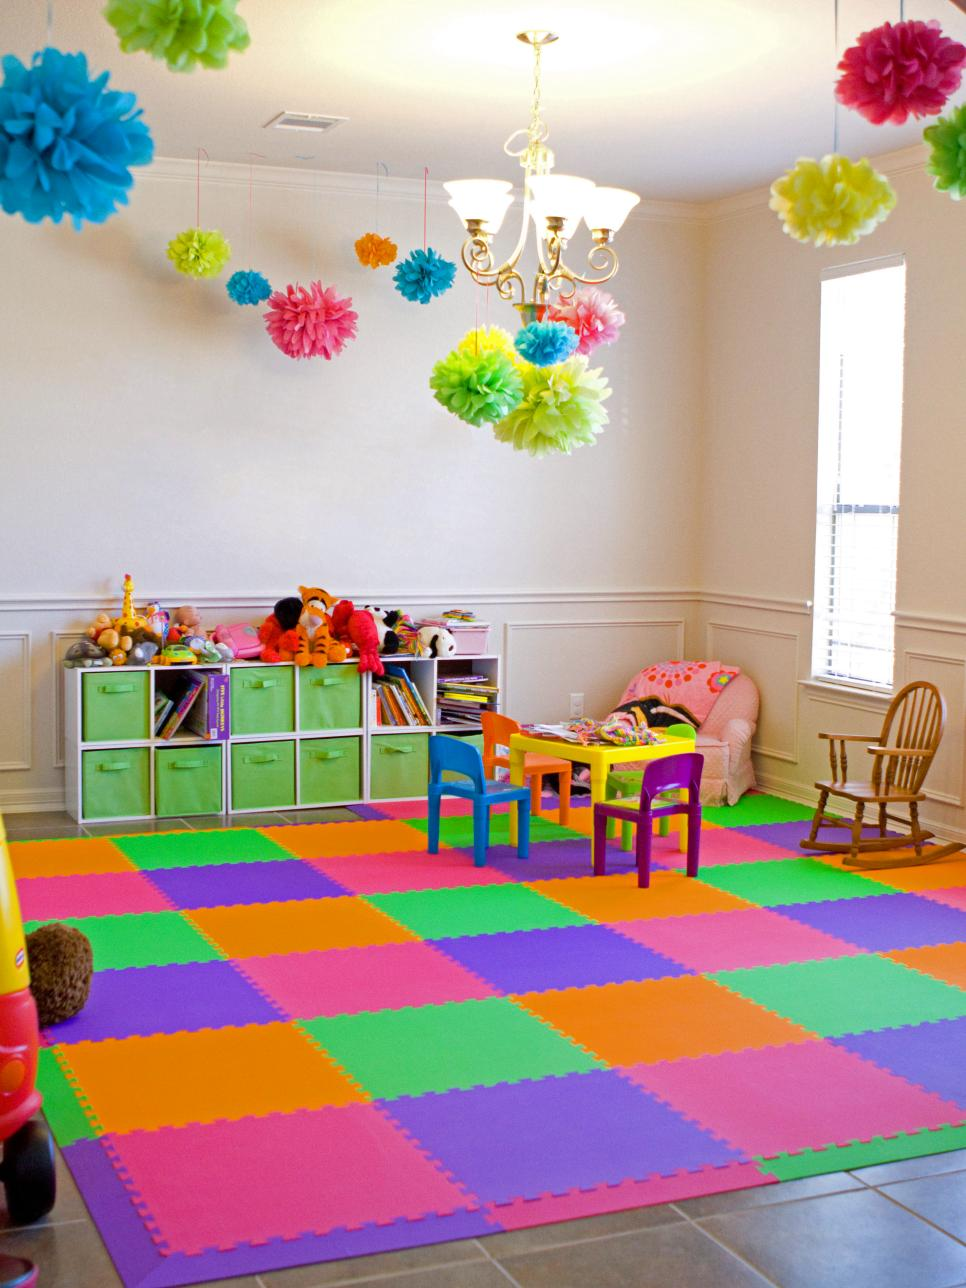 8 Kids' Flooring Ideas  HGTV